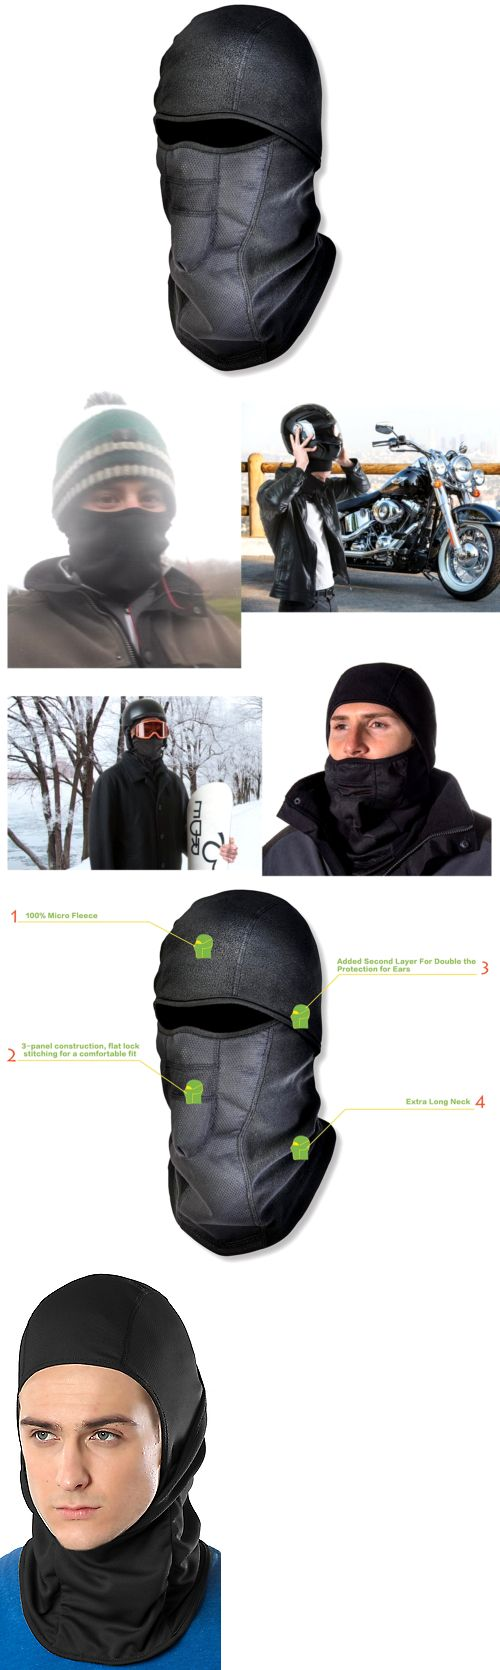 Hats and Headwear 62175: Balaclava Ski Thermal Fleece Motorcycle Full Face Mask Outdoor Cover Winter -> BUY IT NOW ONLY: $32.2 on eBay!